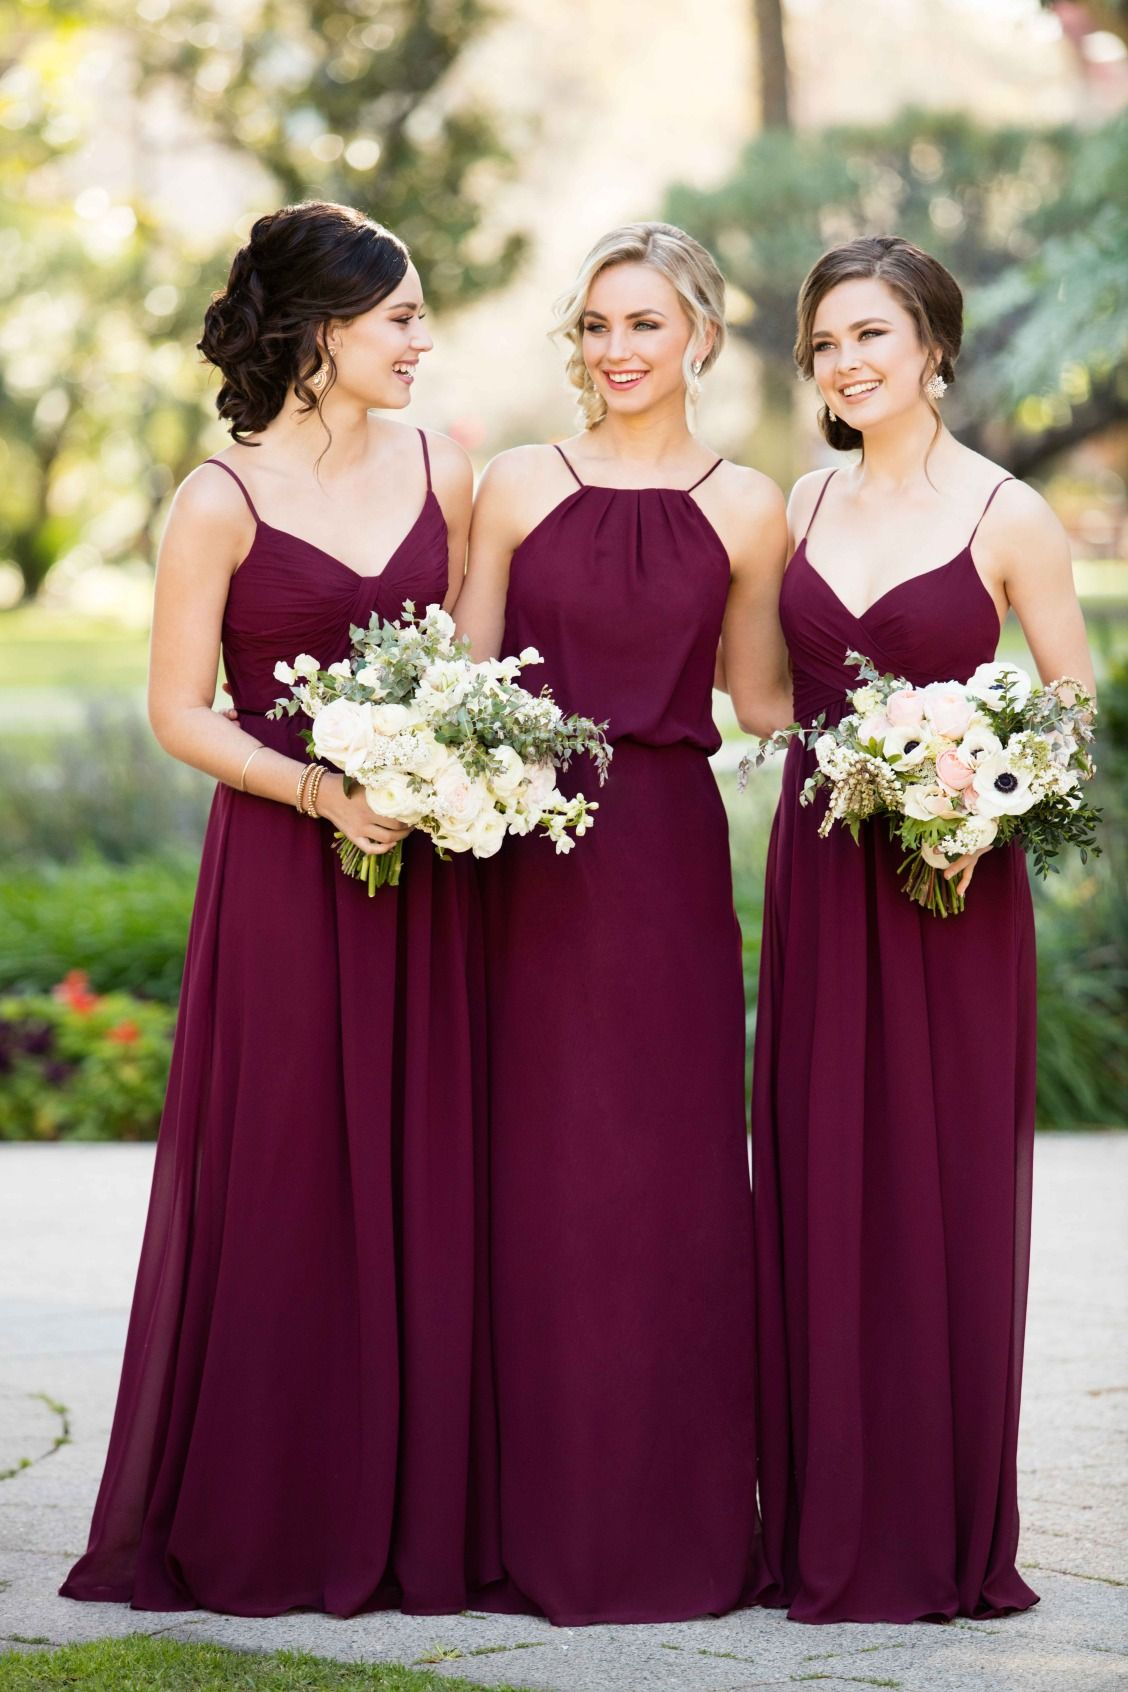 0adc4d491b77 Burgundy Bridesmaids Dress for a mix and match bridal party!